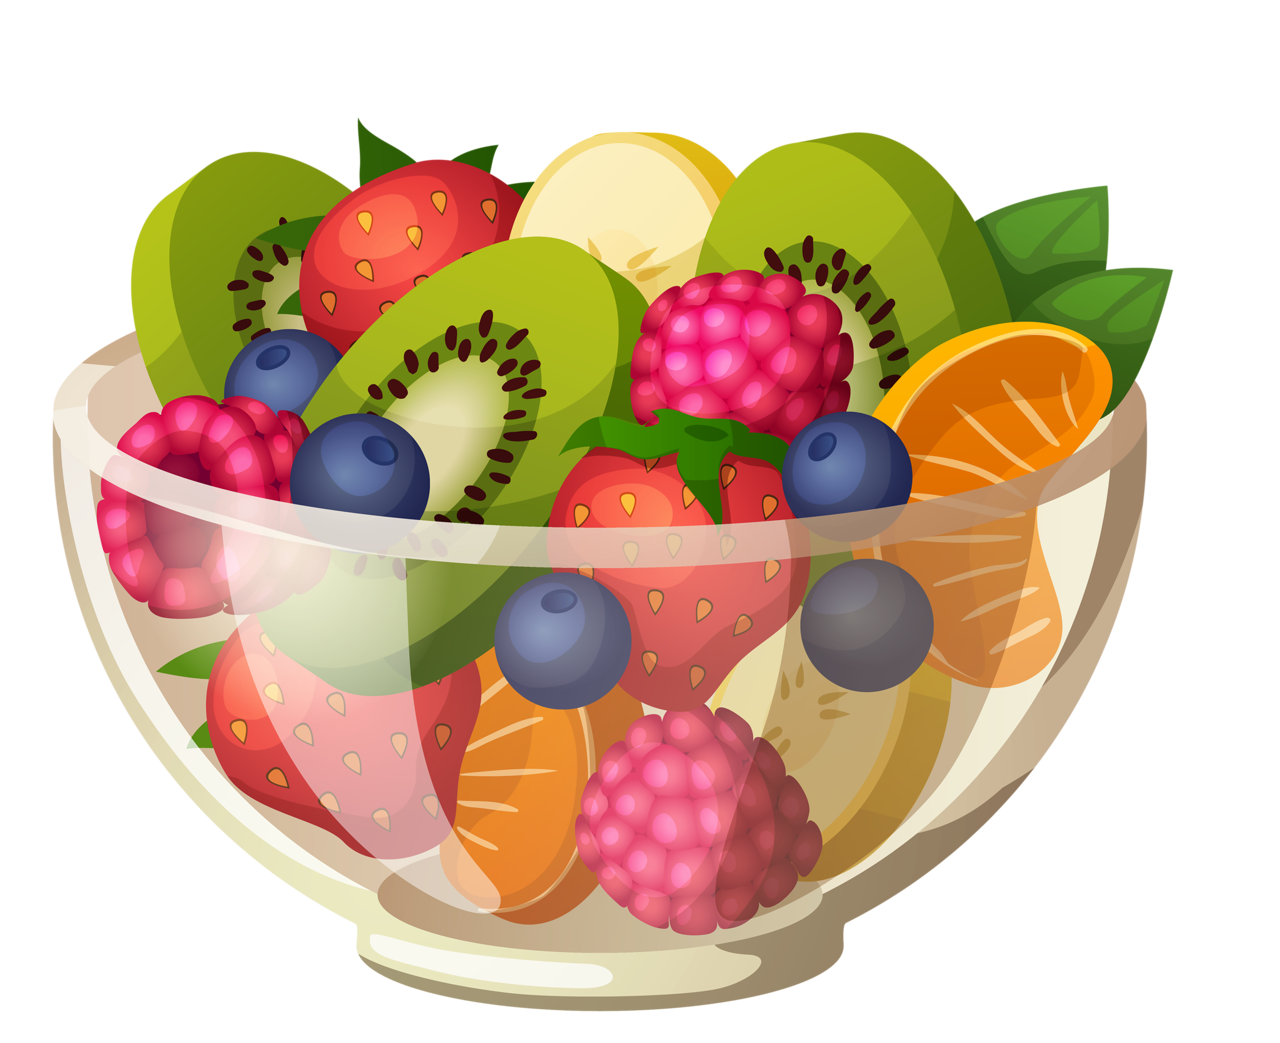 Fruits clipart cereal. Shutterstock png pinterest clip